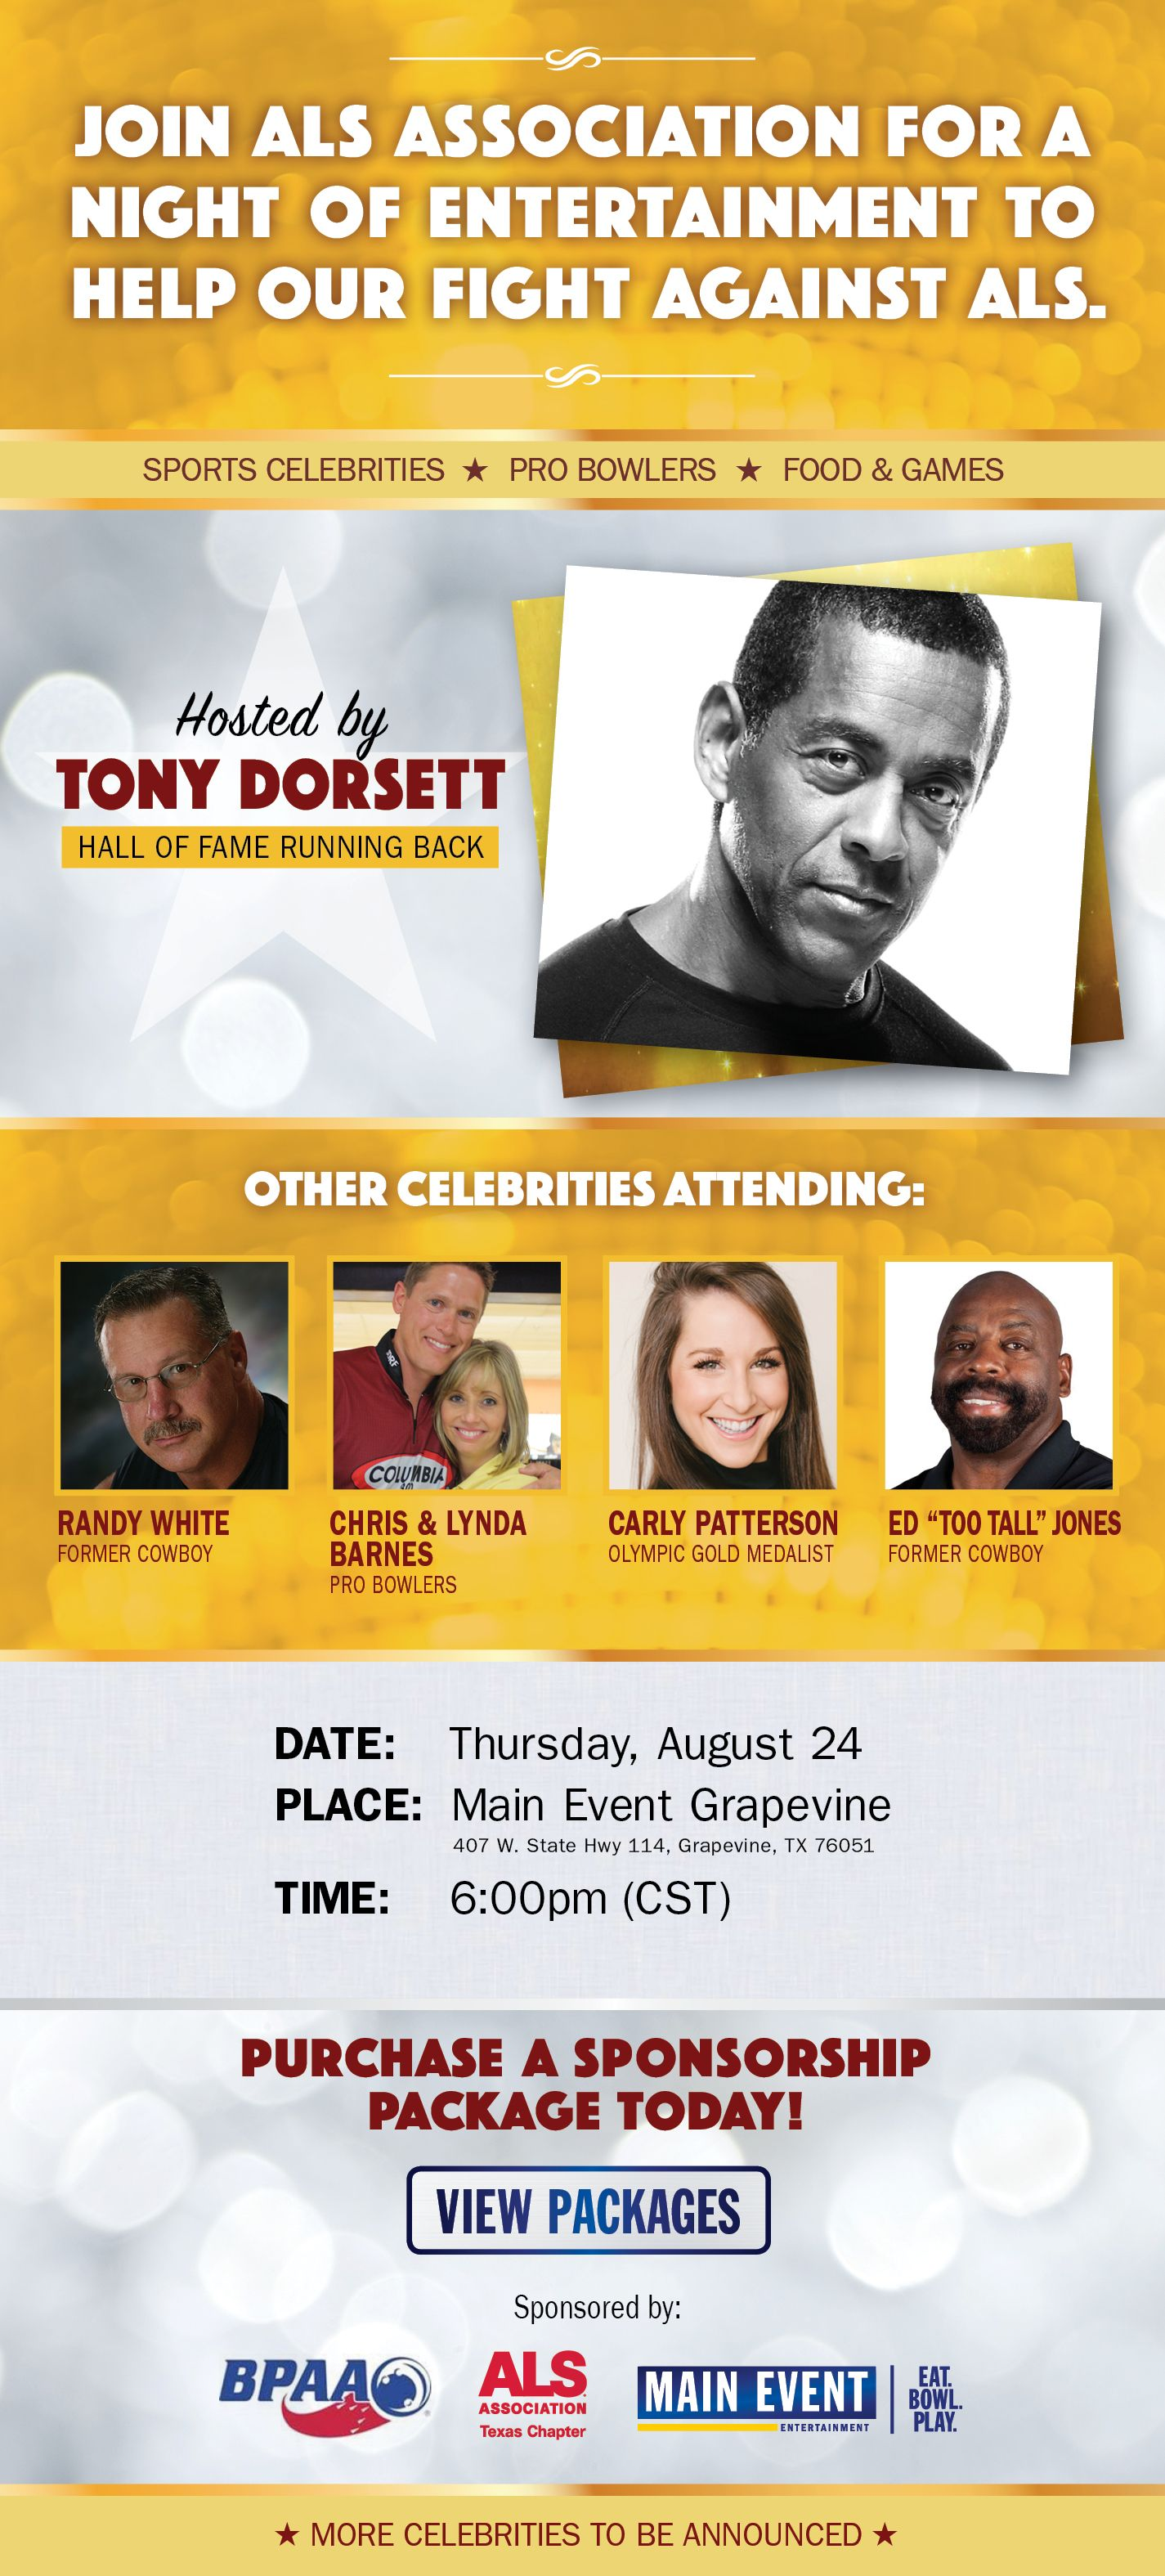 Tony Dorsett To Headline ALS Celebrity Bowling Classic At Main Event Grapevine